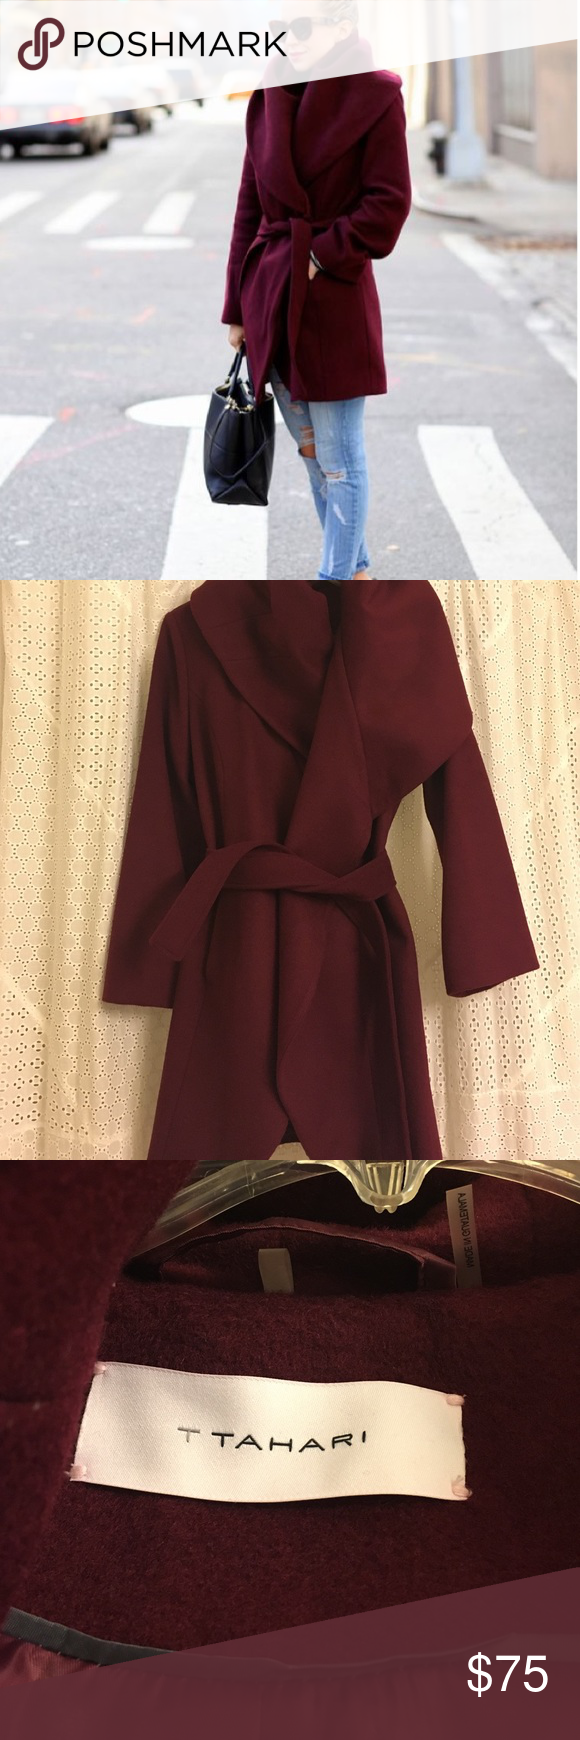 ✨SALE✨// T Thari Marsala Wool Cocoon Coat // 😍love this deep Marsala coat! Such a gorgeous color for the fall and winter. Only worn once! Size small. 😍 T Tahari Jackets & Coats Pea Coats